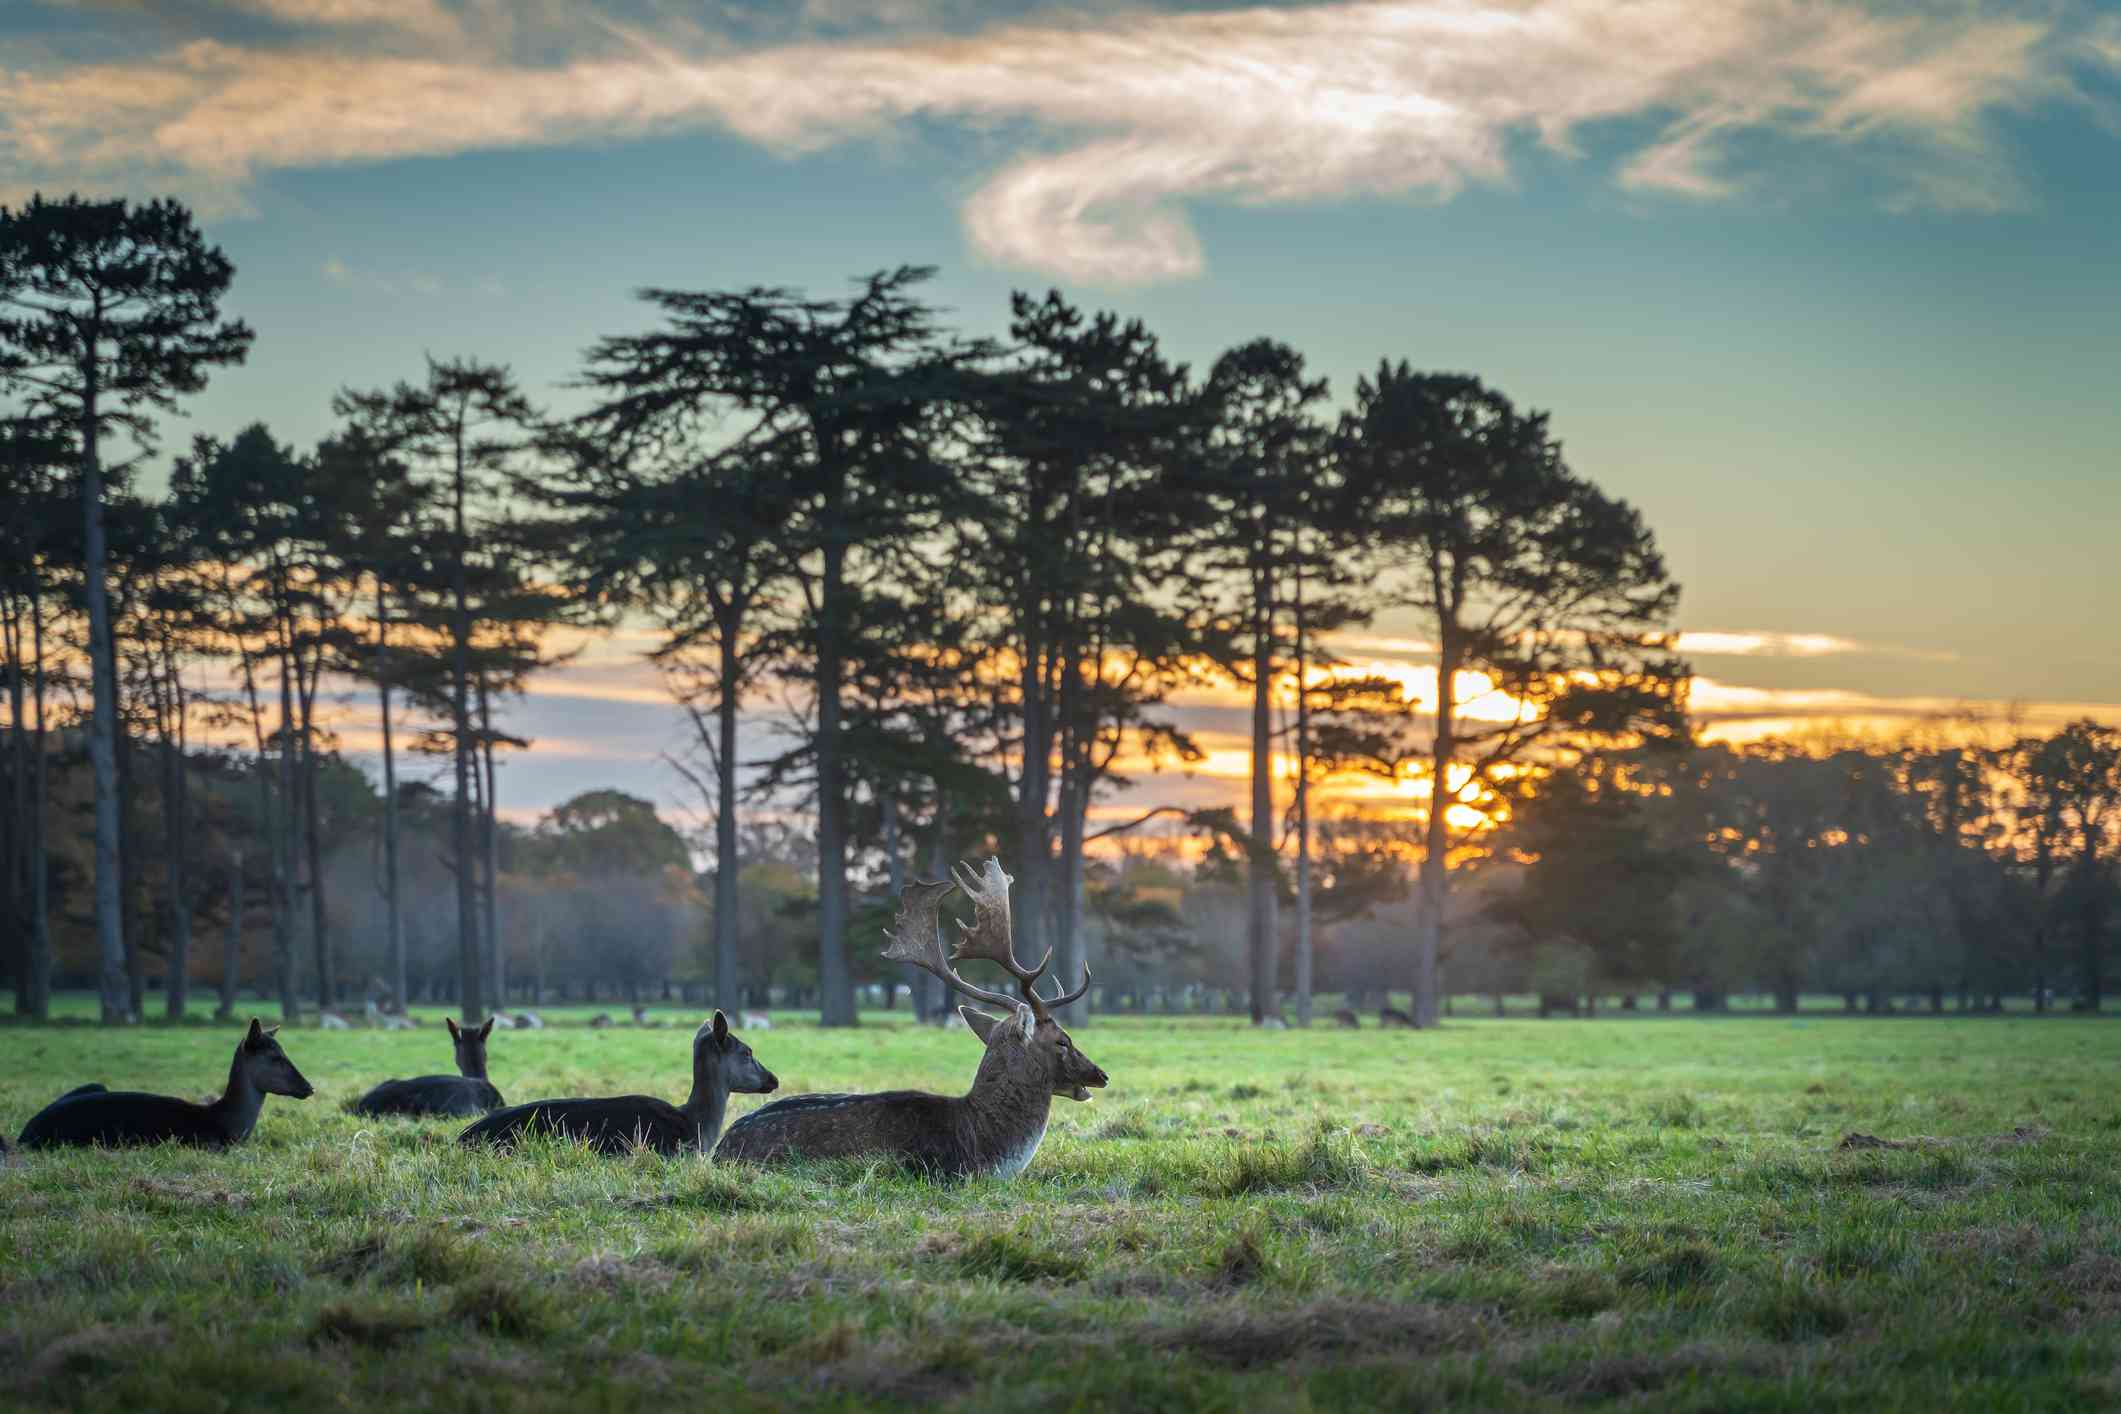 A herd of deer and stag lying on flat plain of green grass grass with distant trees, under a beautiful sunset at Phoenix Park, Dublin, Ireland